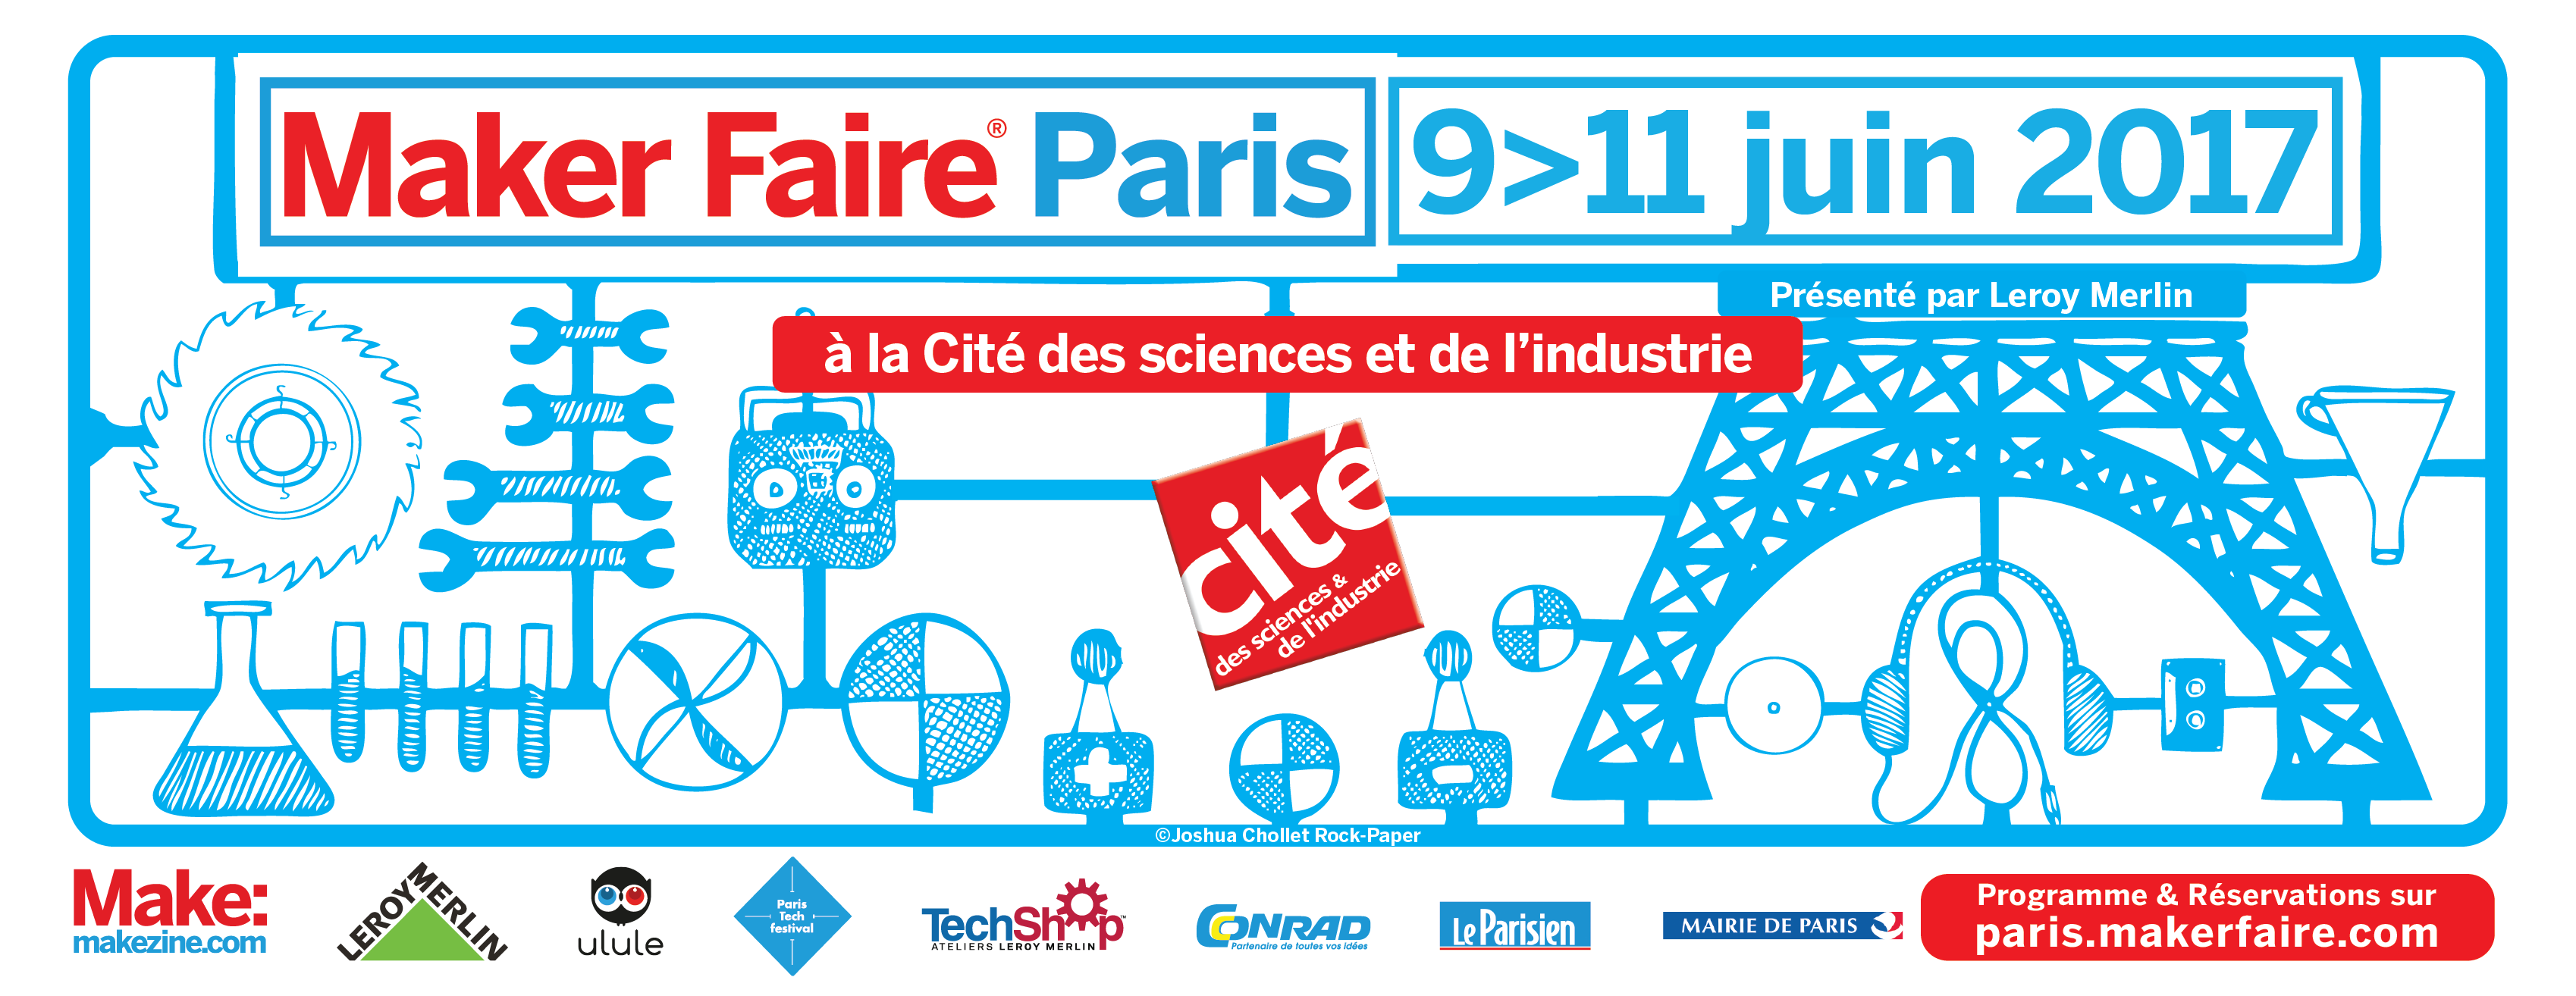 Maker Faire Paris 2017